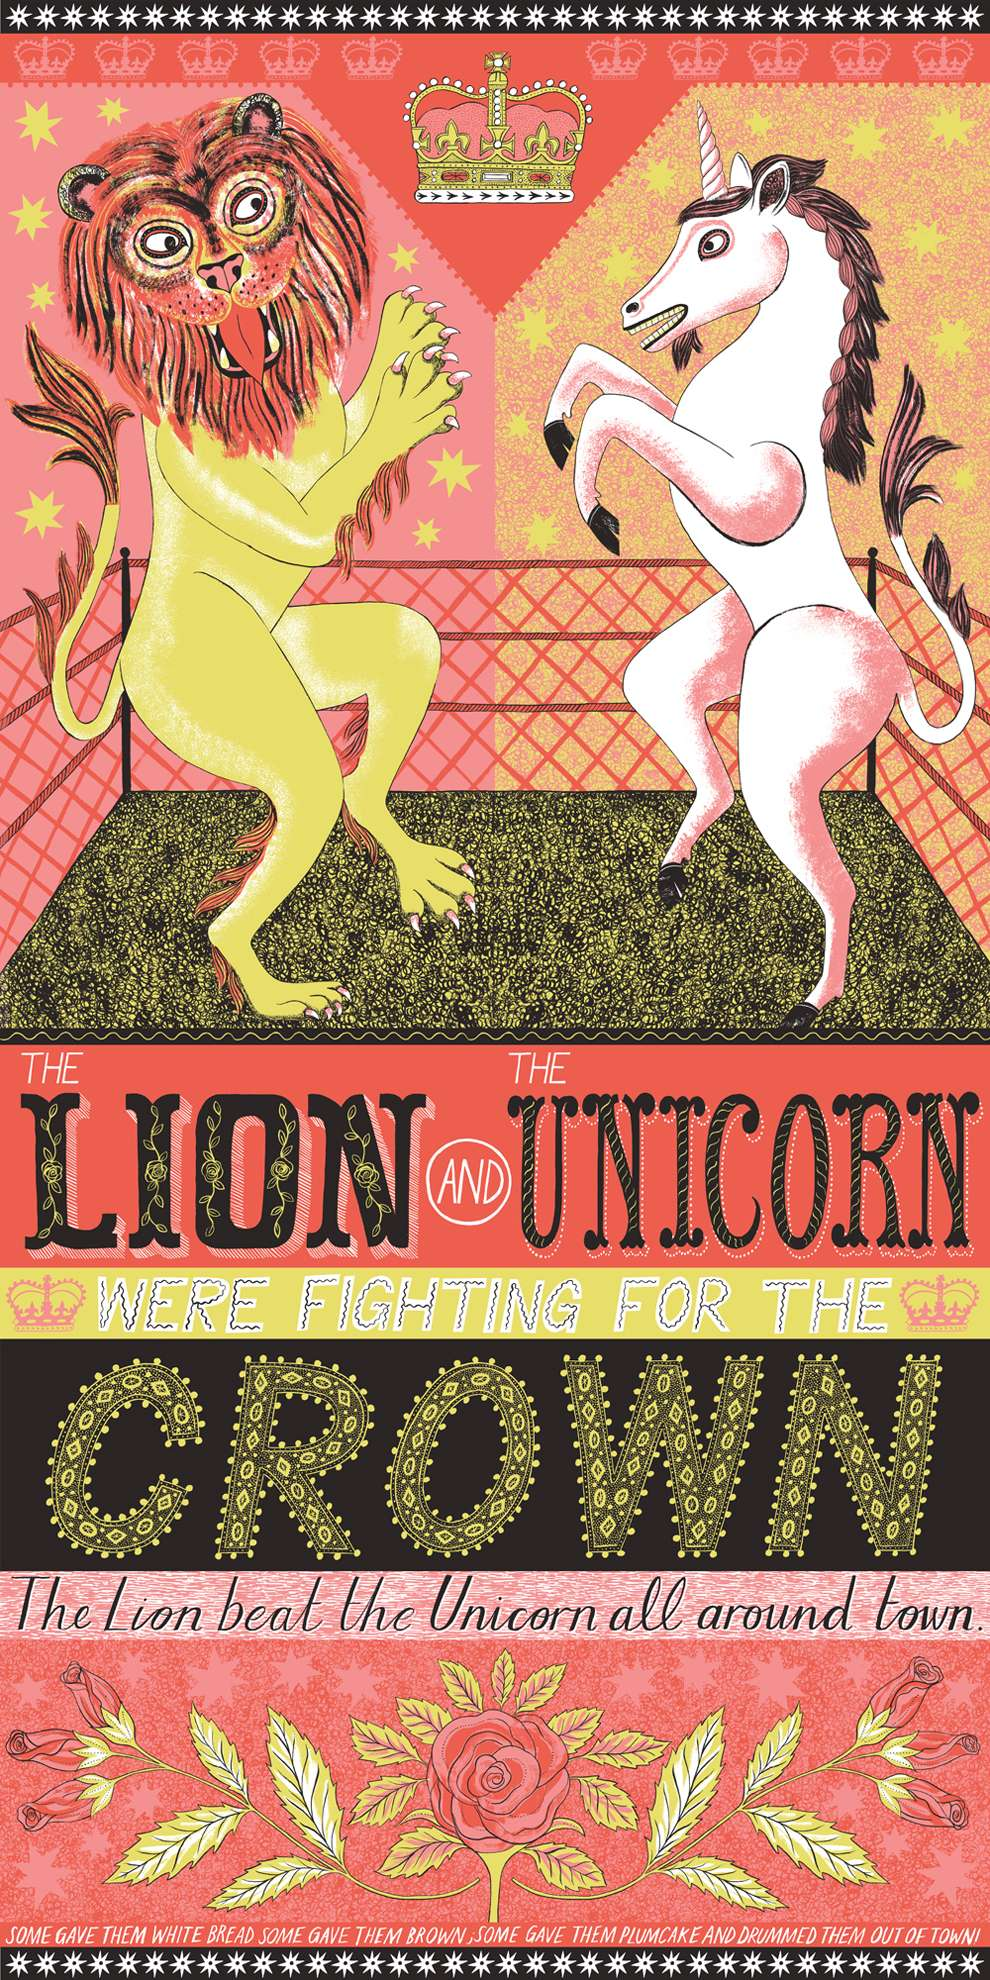 Alice Pattullo, Bright and colourful screenprint book cover illustration of a lion and a unicorn fighting in a ring